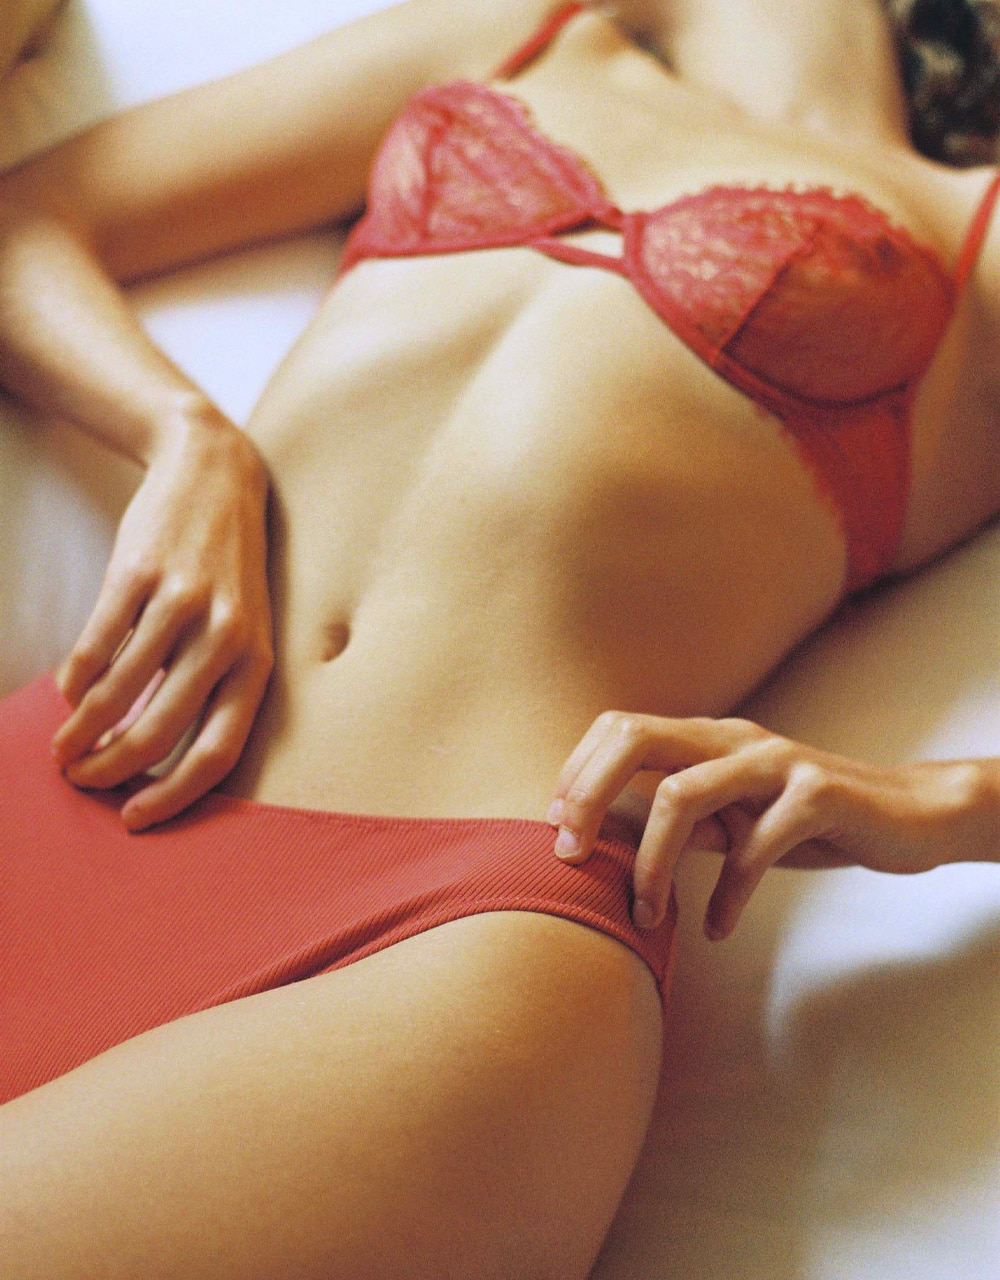 lingerie bra with underwires Charlie Tan 39 € Girls In Paris photo 3